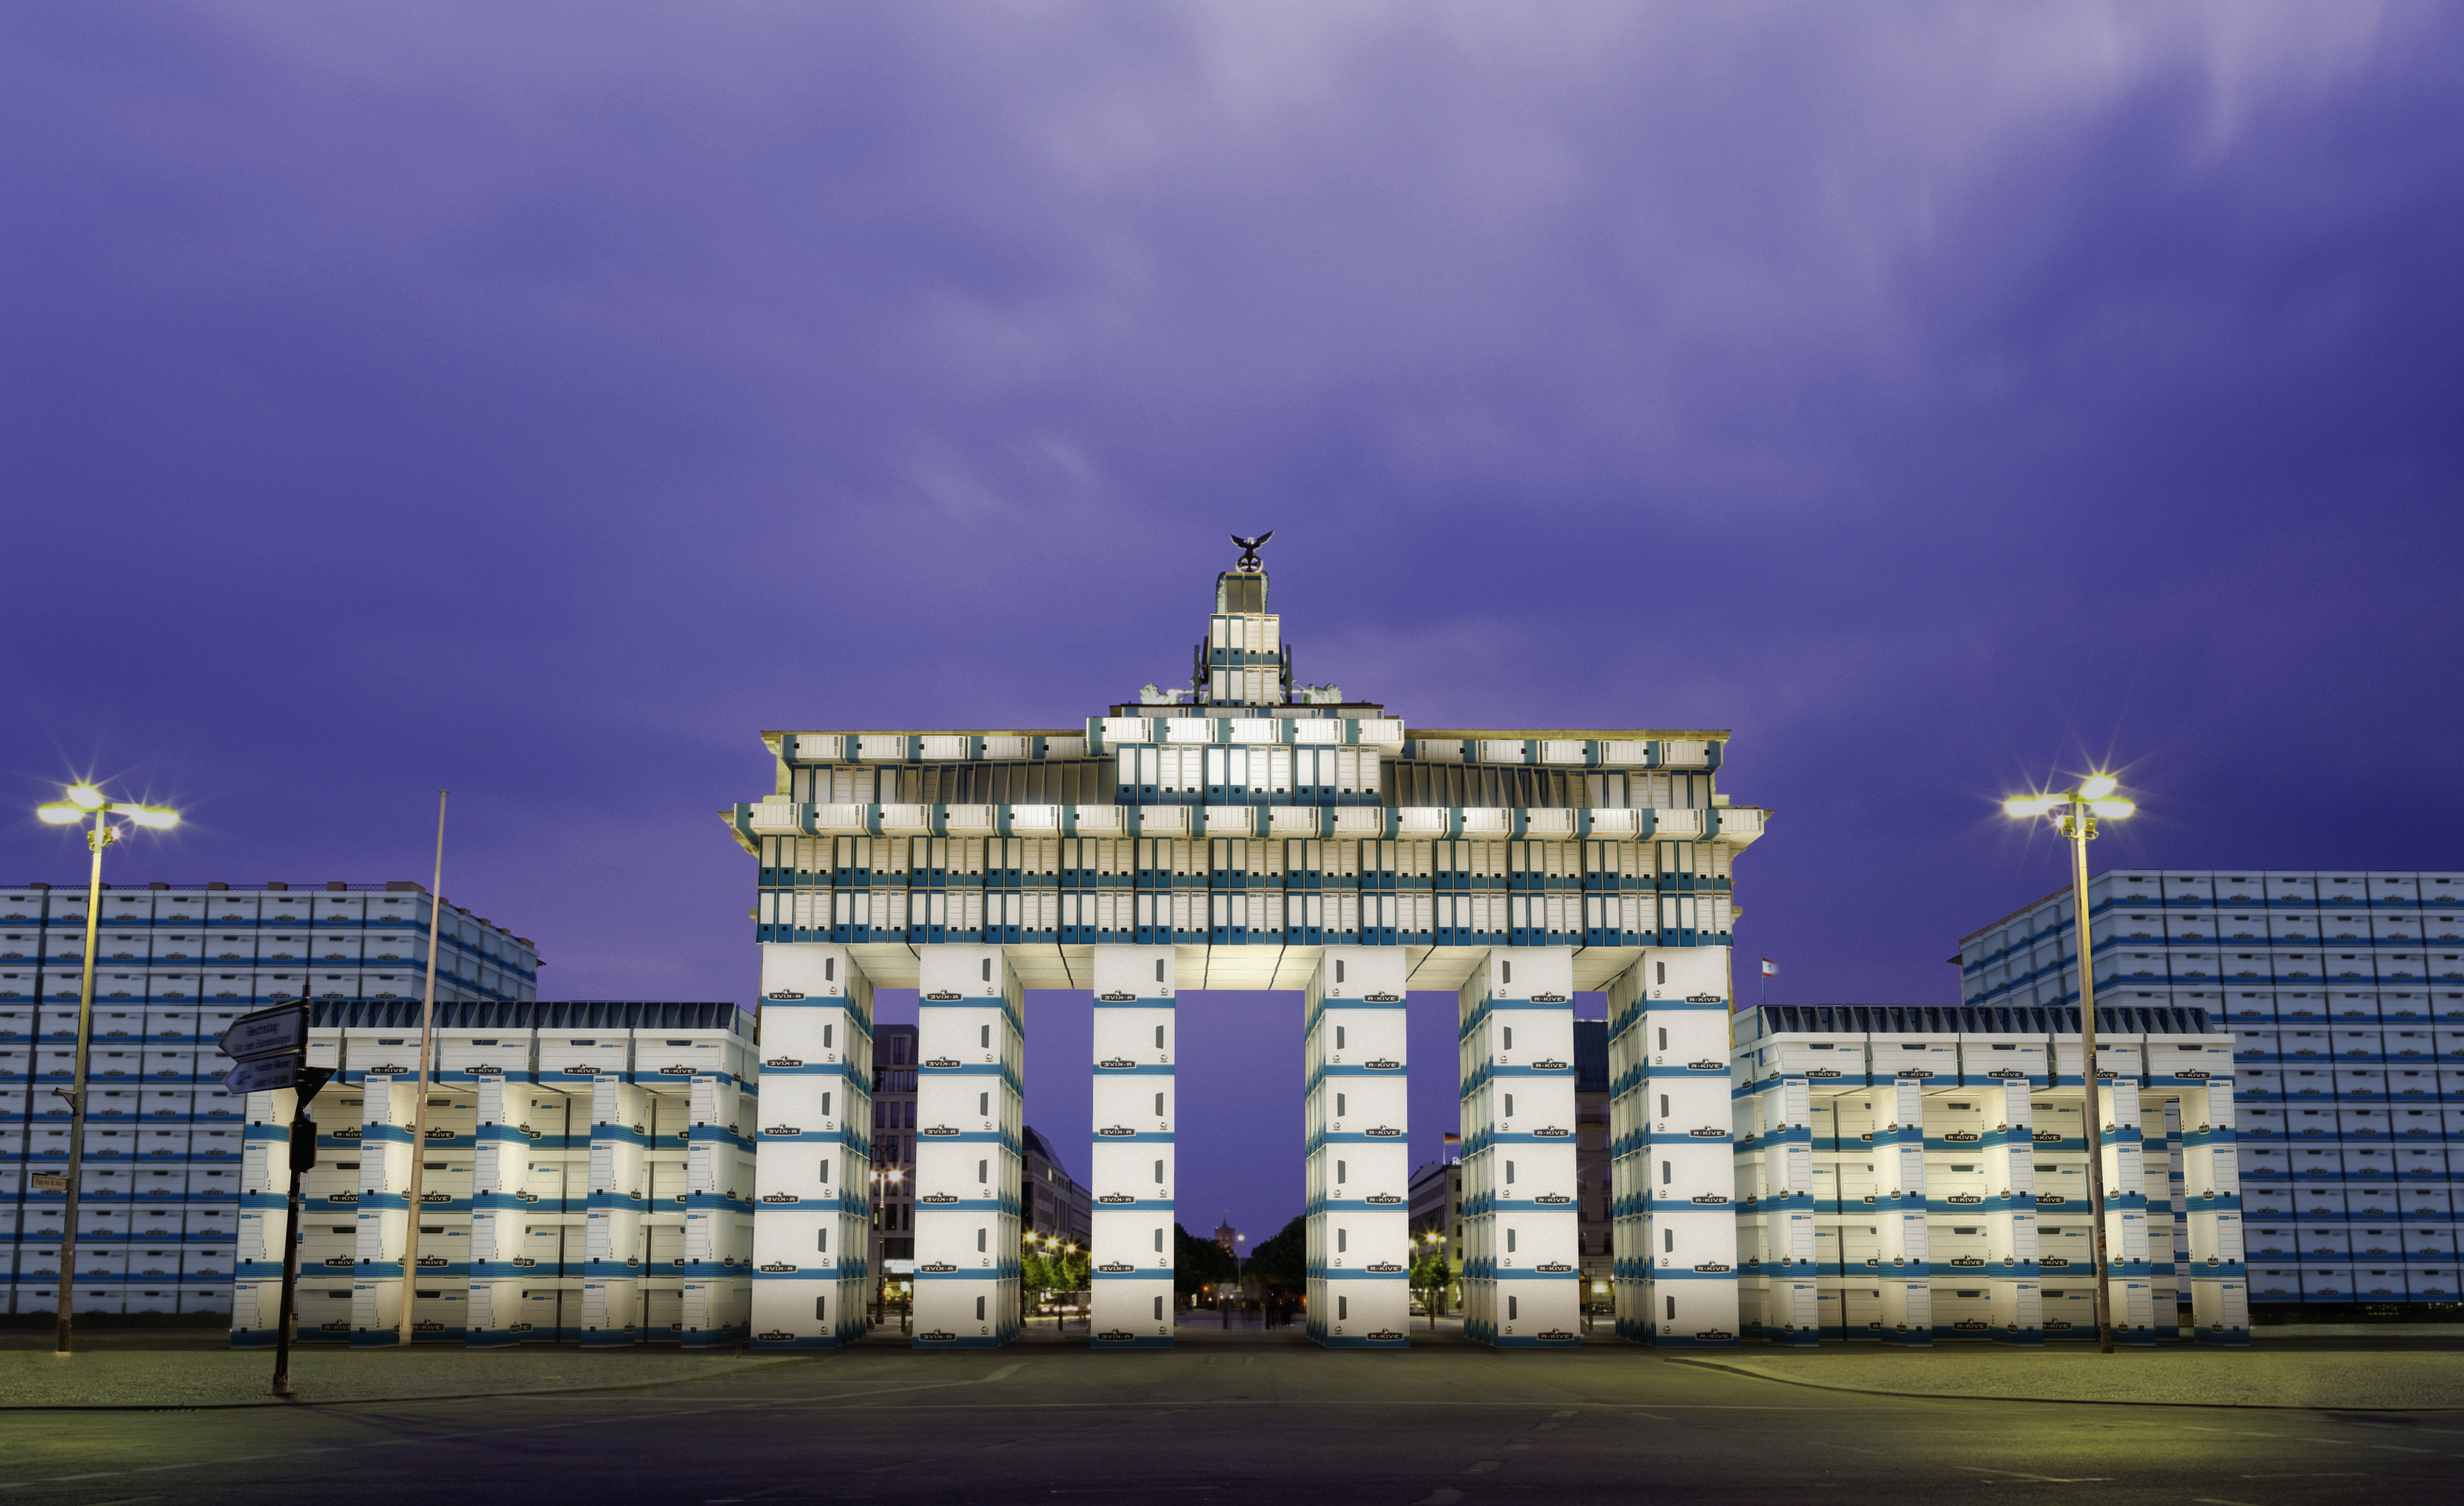 Germany, Berlin, Brandenburg Gate, dusk